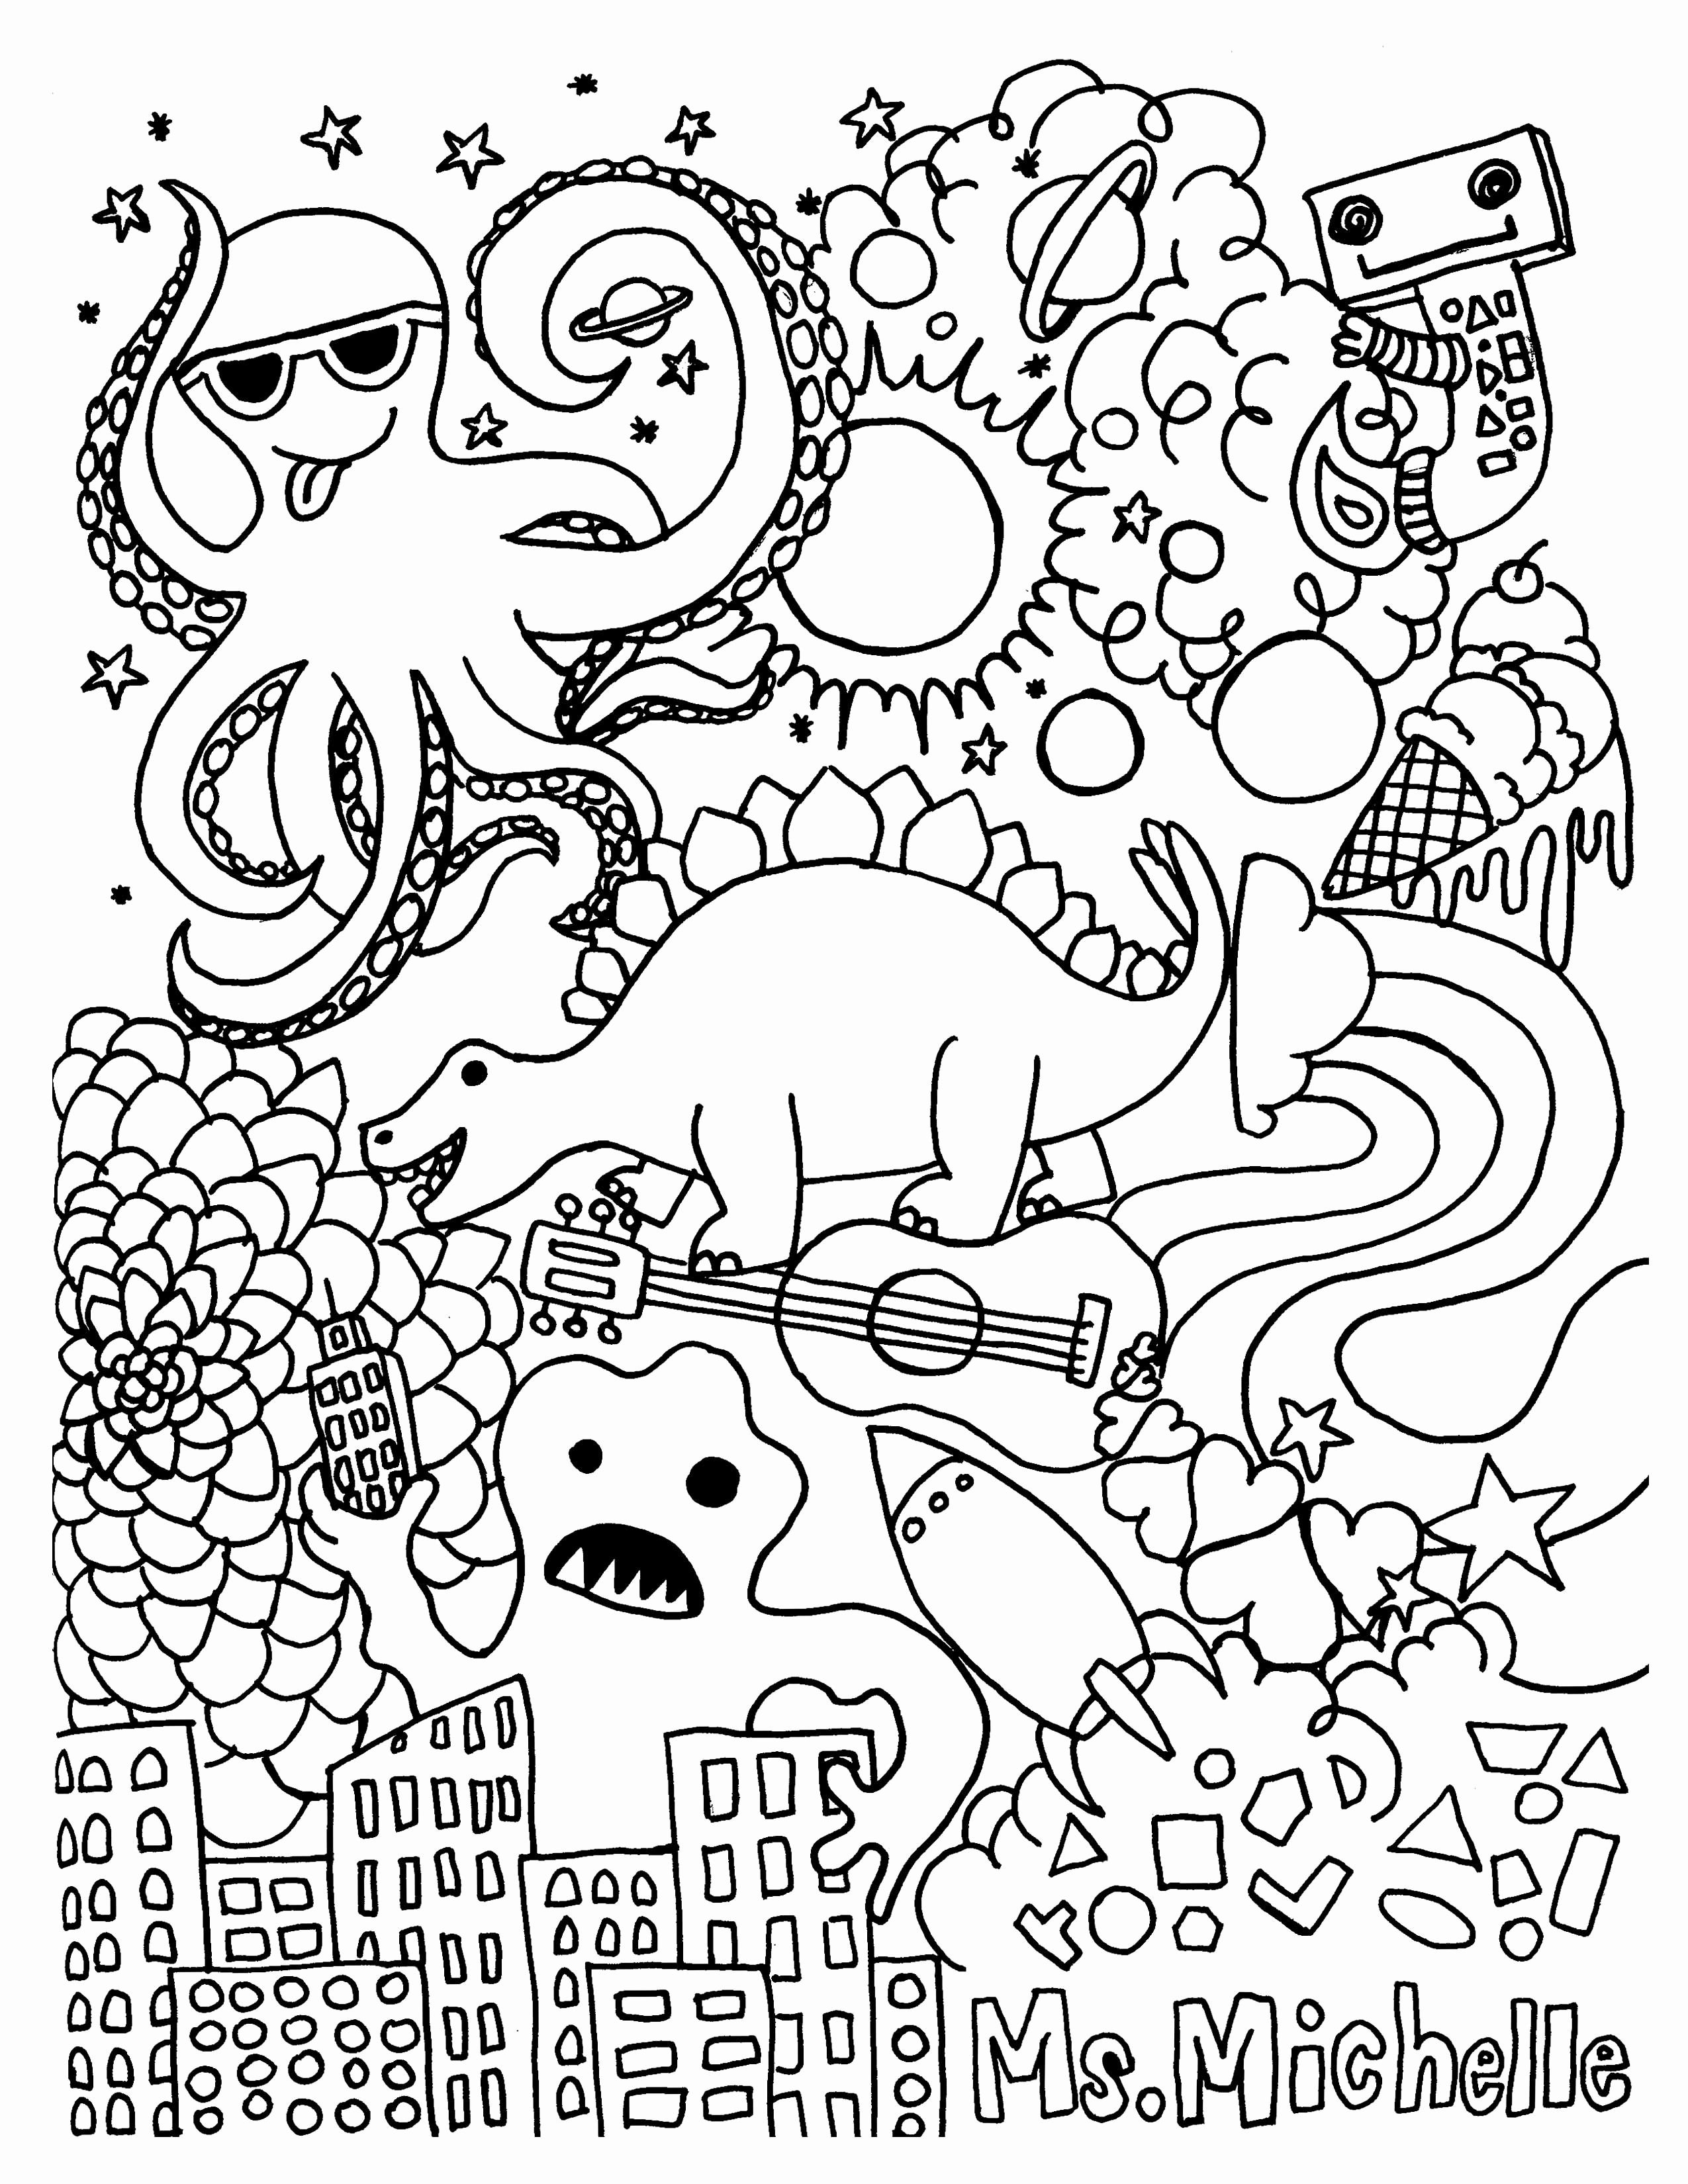 Nickelodeon coloring pages online free coloring pages for halloween unique best coloring page adult od